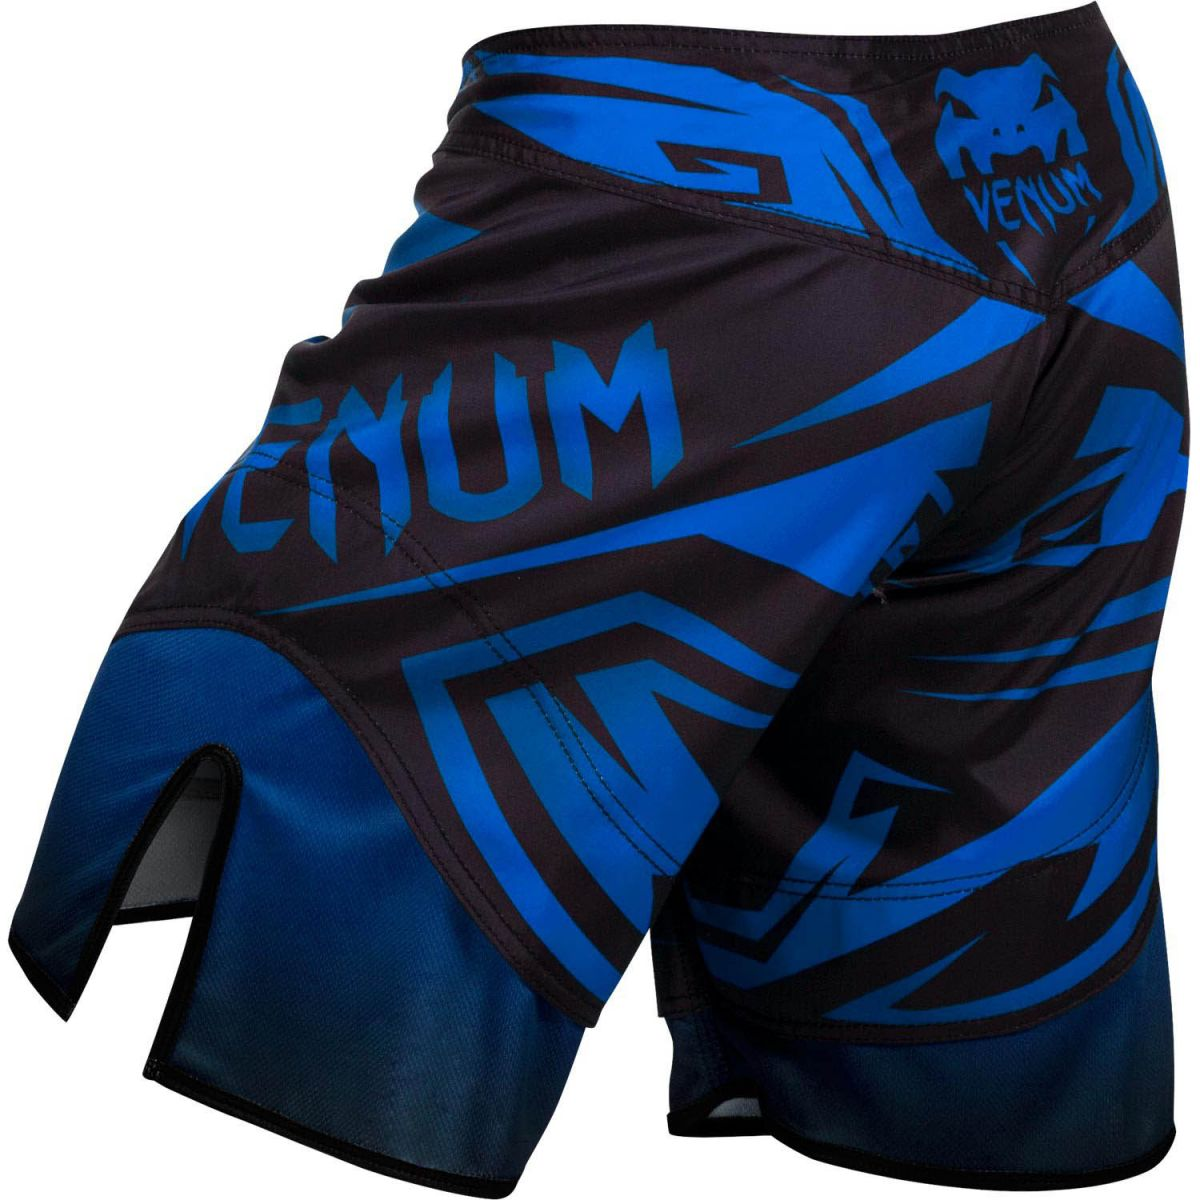 Bermuda MMA - Shadow Hunter- Preto/Azul- Venum  - Loja do Competidor